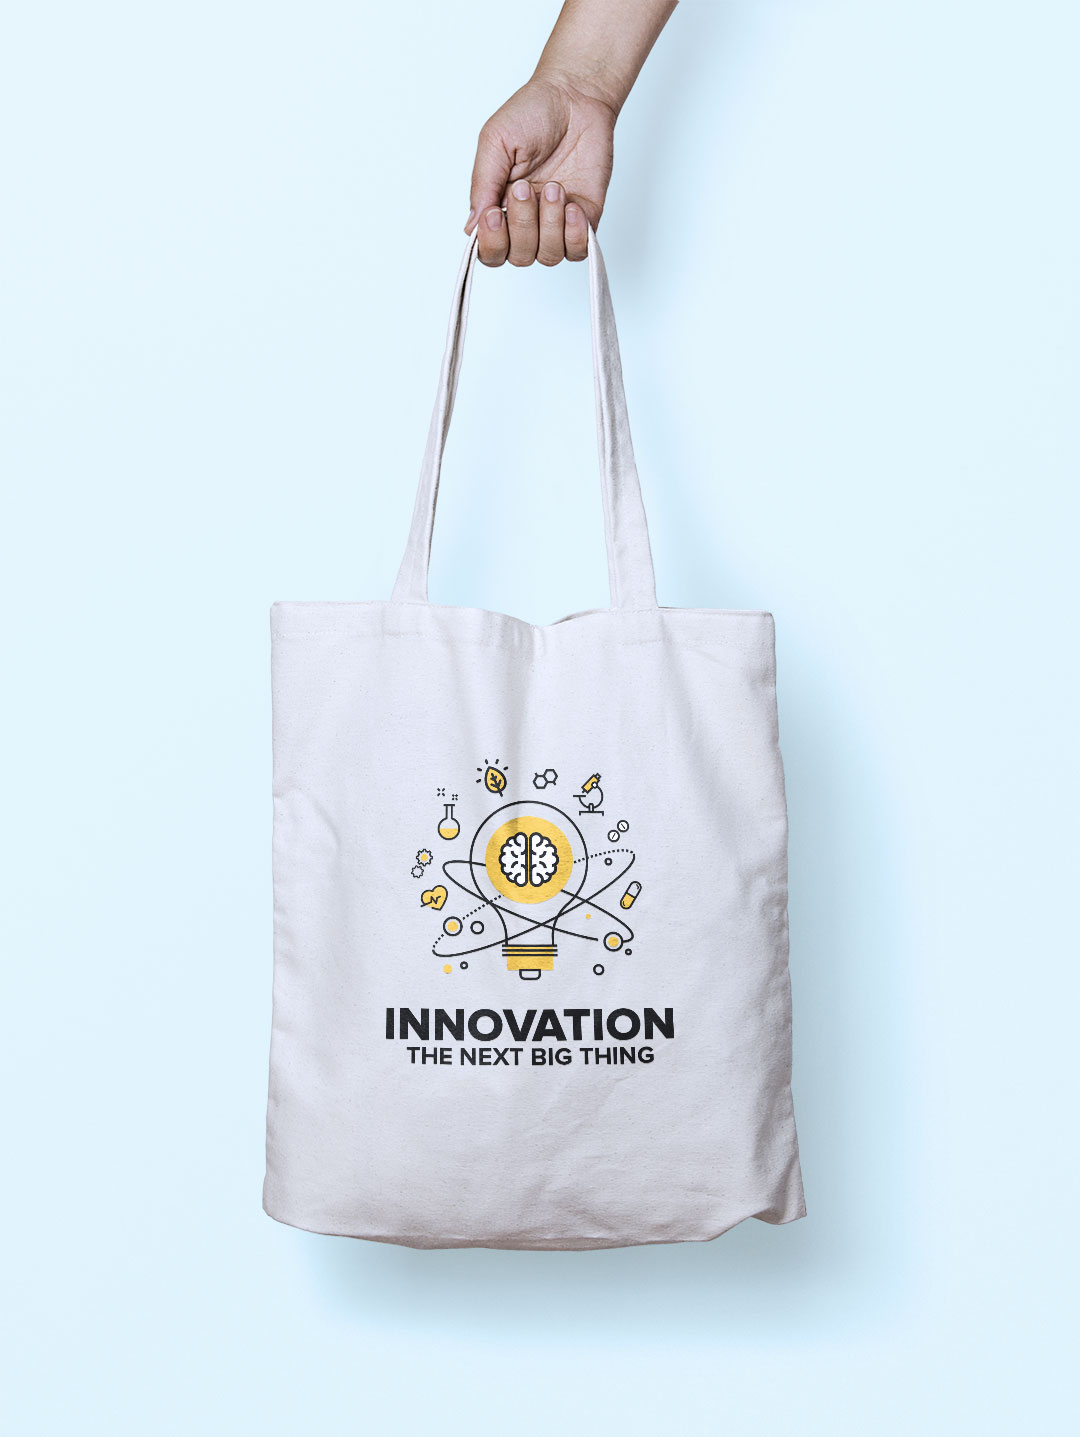 Event Branding Design Manly - Tote bag design